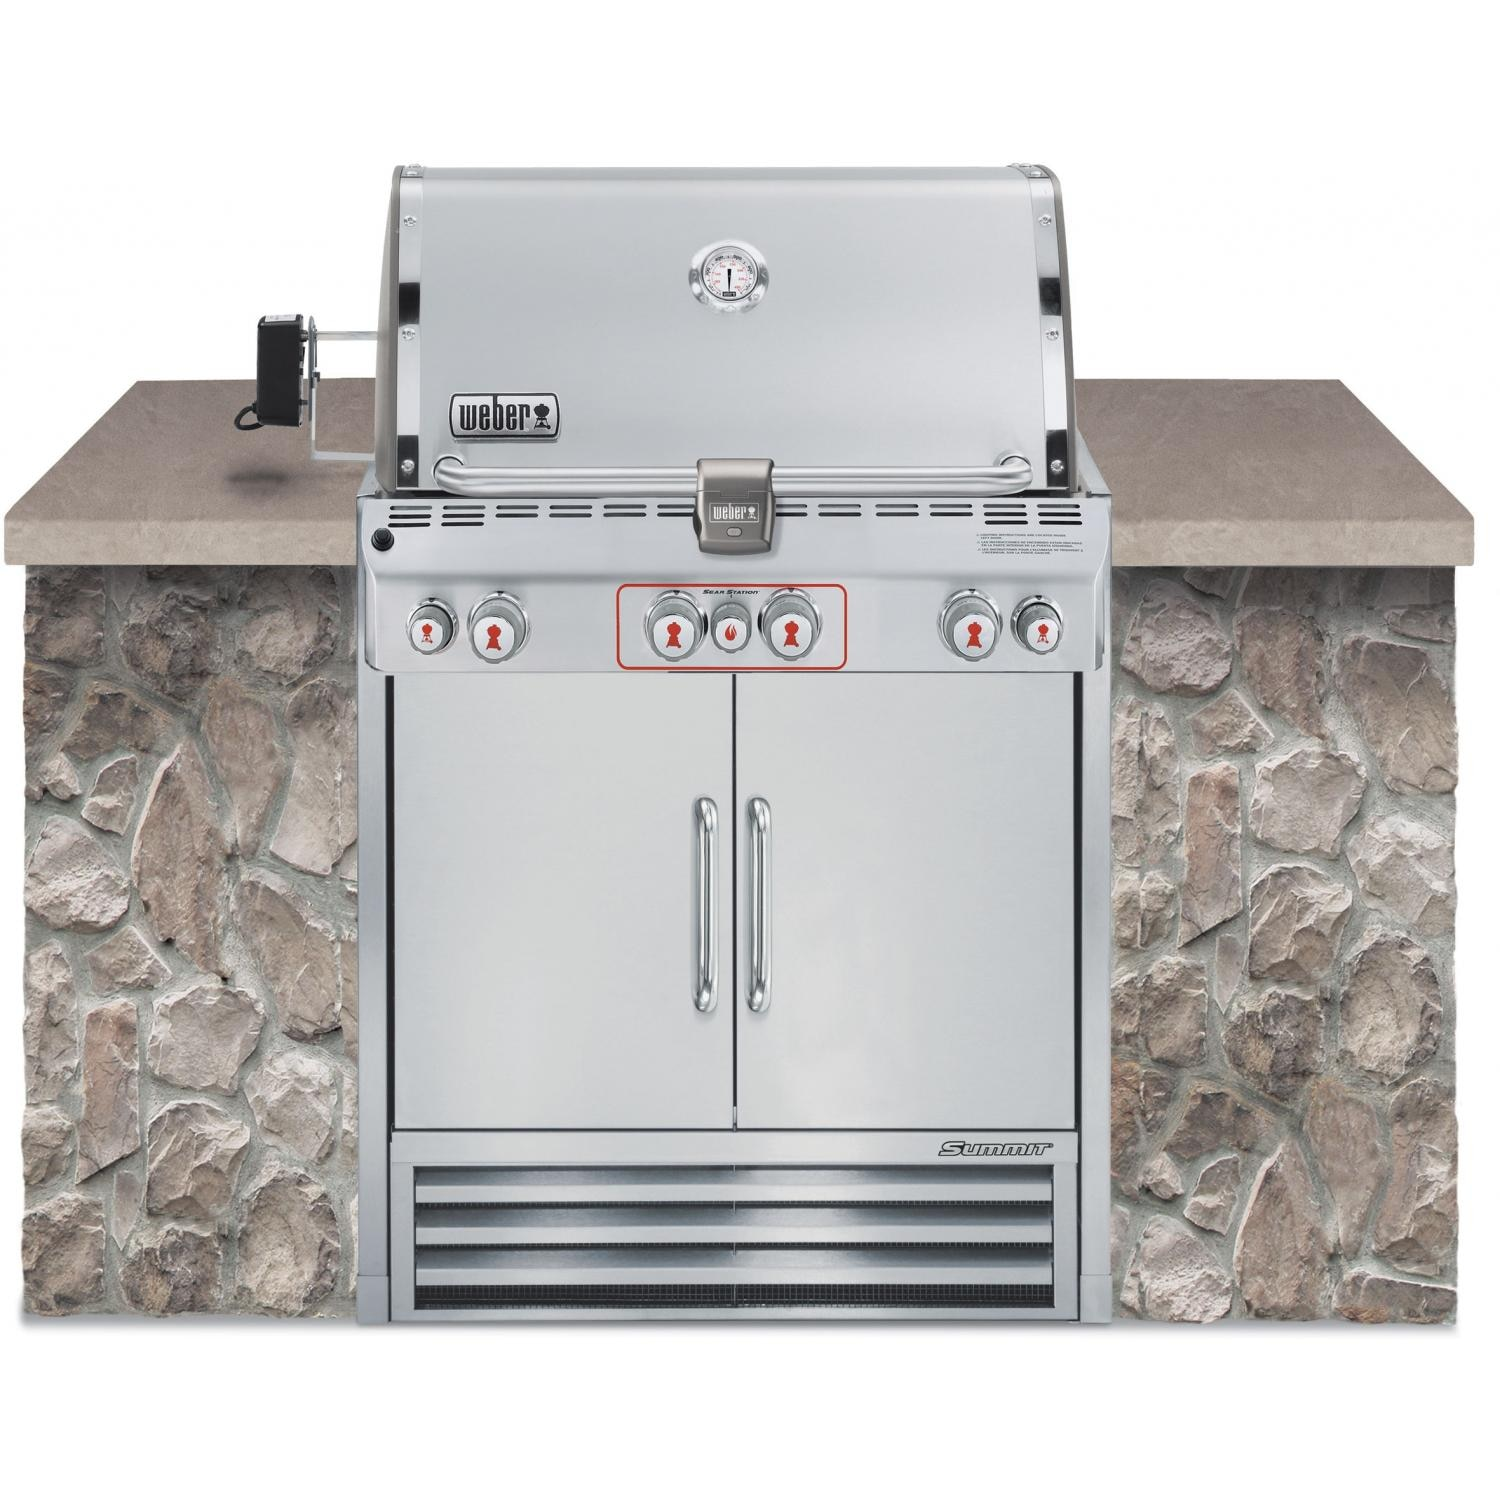 Outdoor GreatRoom company Weber Summit S-460 Built-in Gas Outdoor BBQ Grill Stainless Steel 7160001 at Sears.com